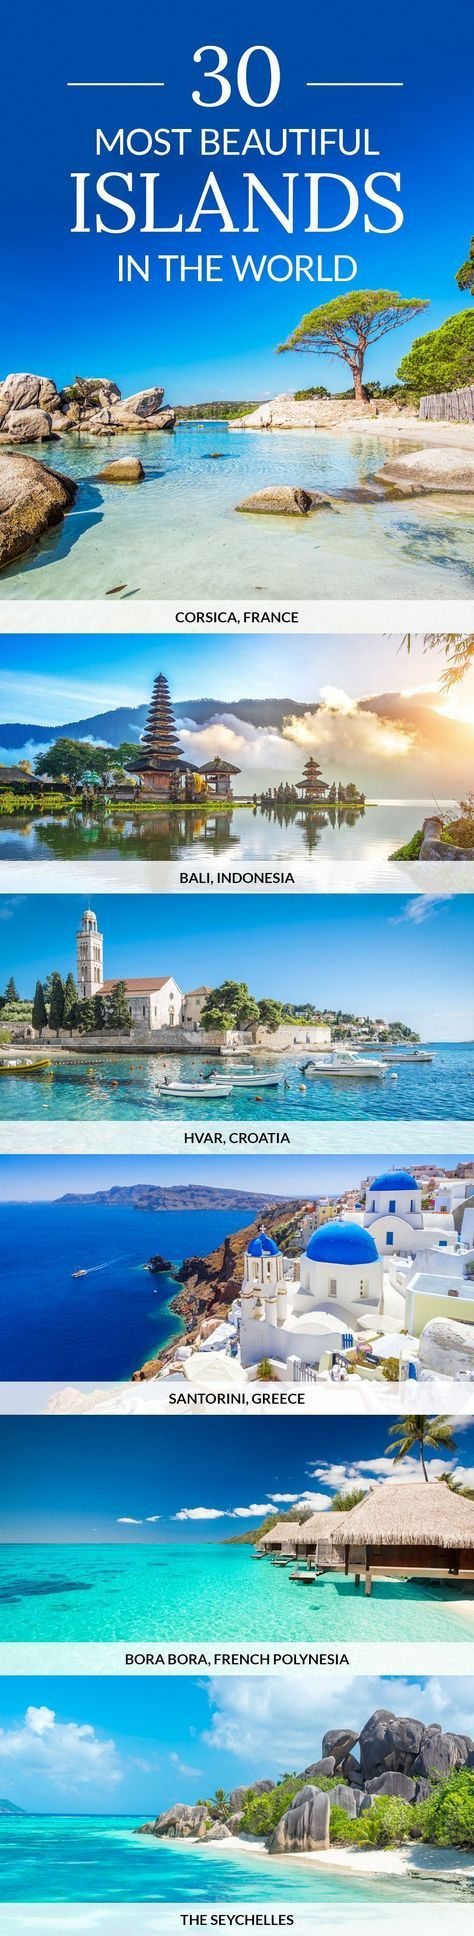 30 Most Beautiful Islands in the World